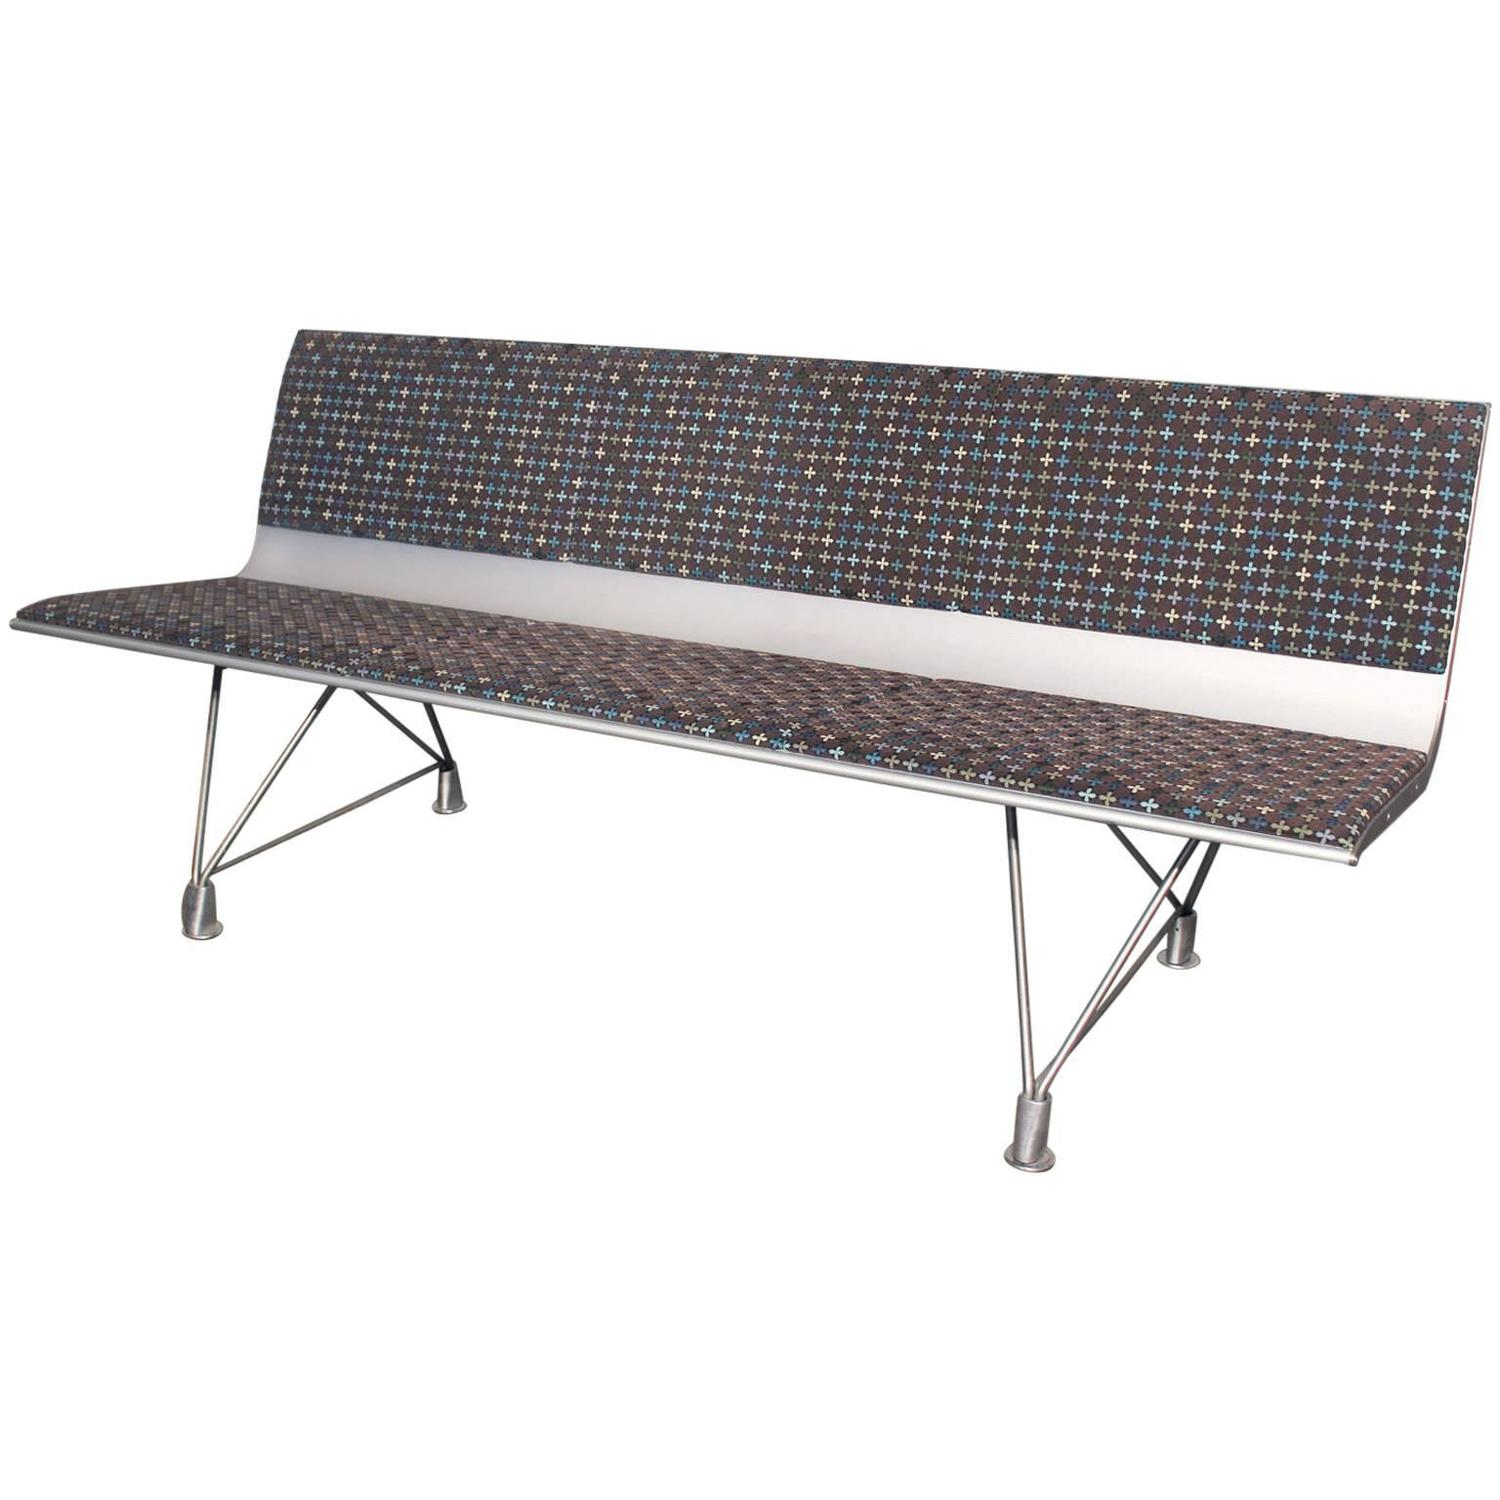 Aero Aluminum Bench from Davis Furniture by Lievore Altherr Molina and  Sellex For Sale at 1stdibs